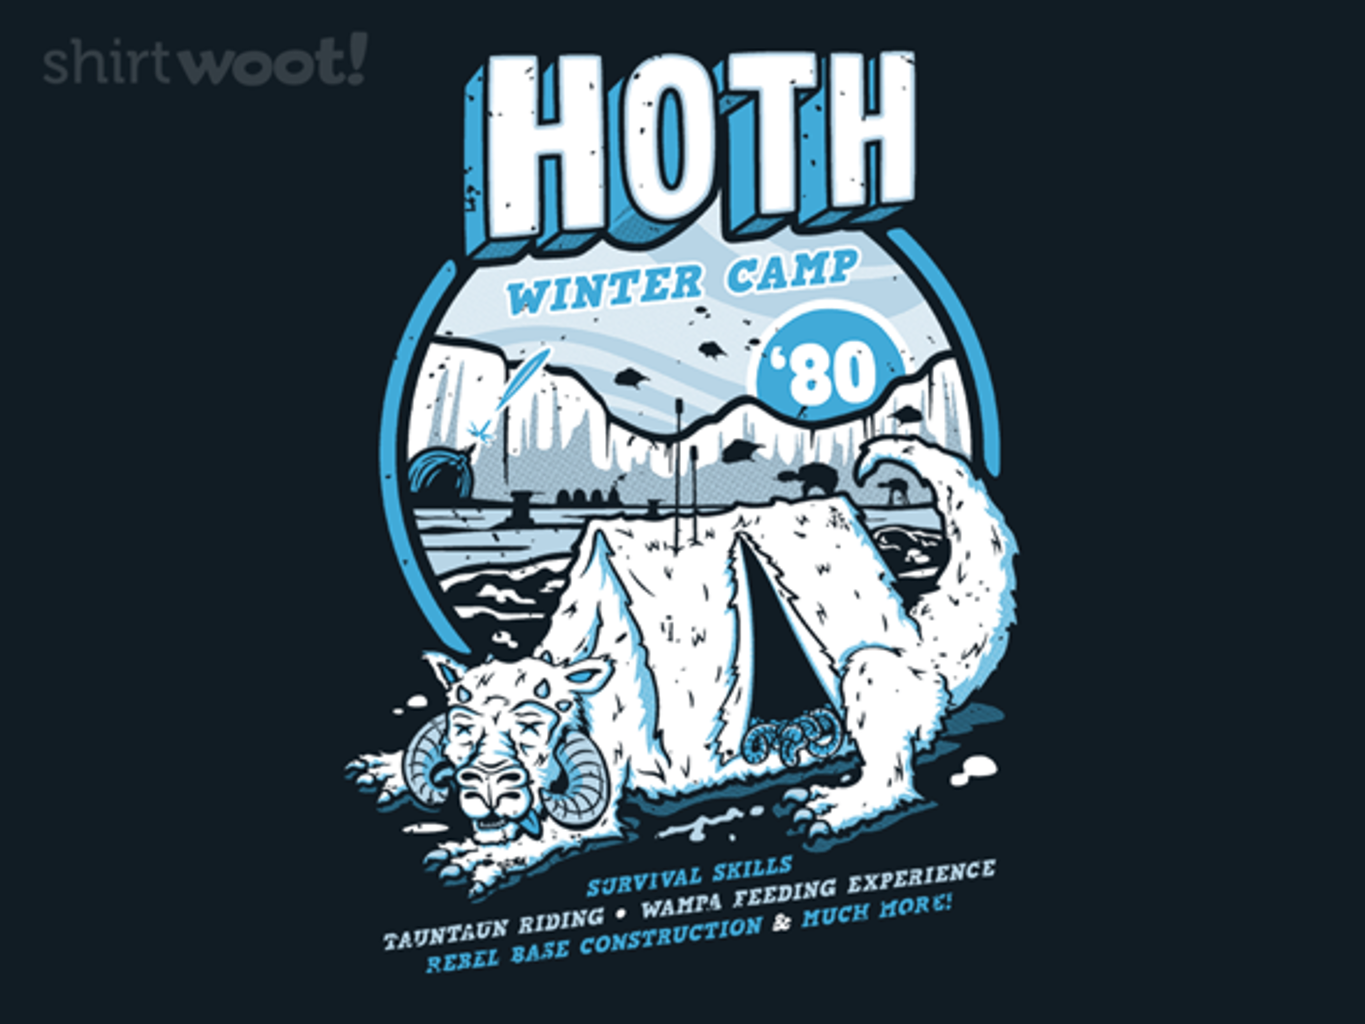 Woot!: Hoth Winter Camp